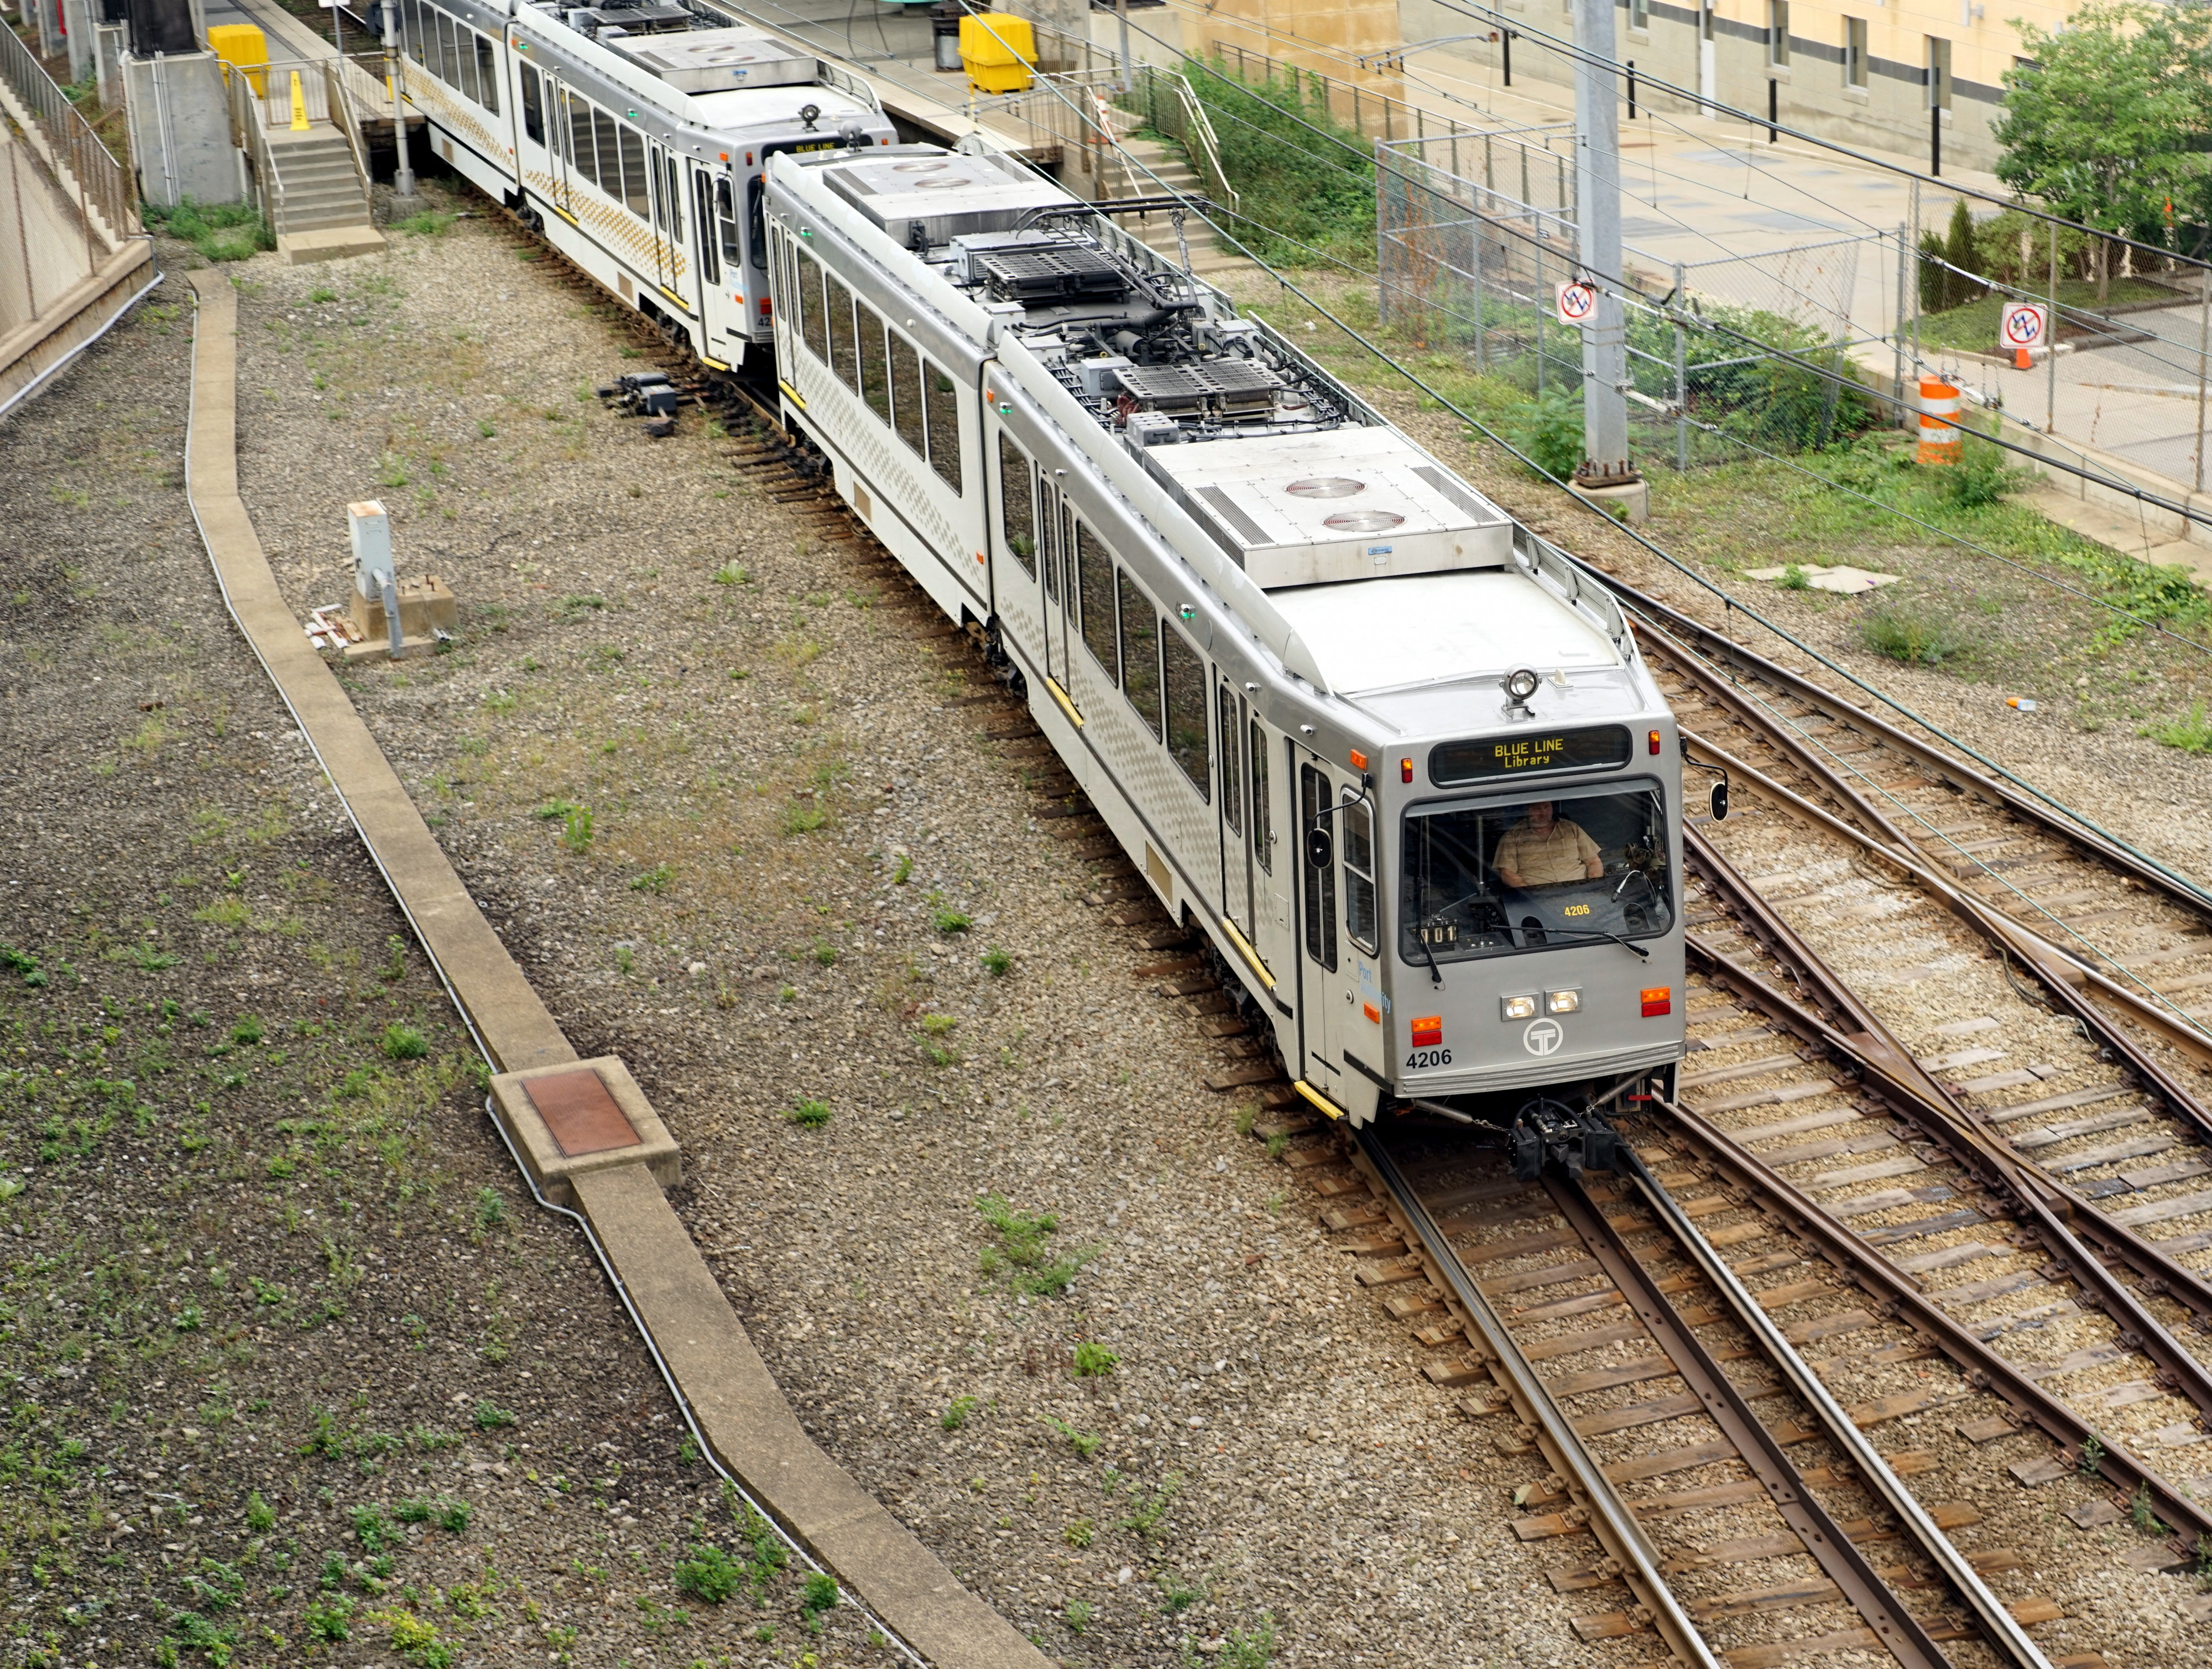 Pittsburgh Light Rail Siemens SD-400 leaving First Avenue Station